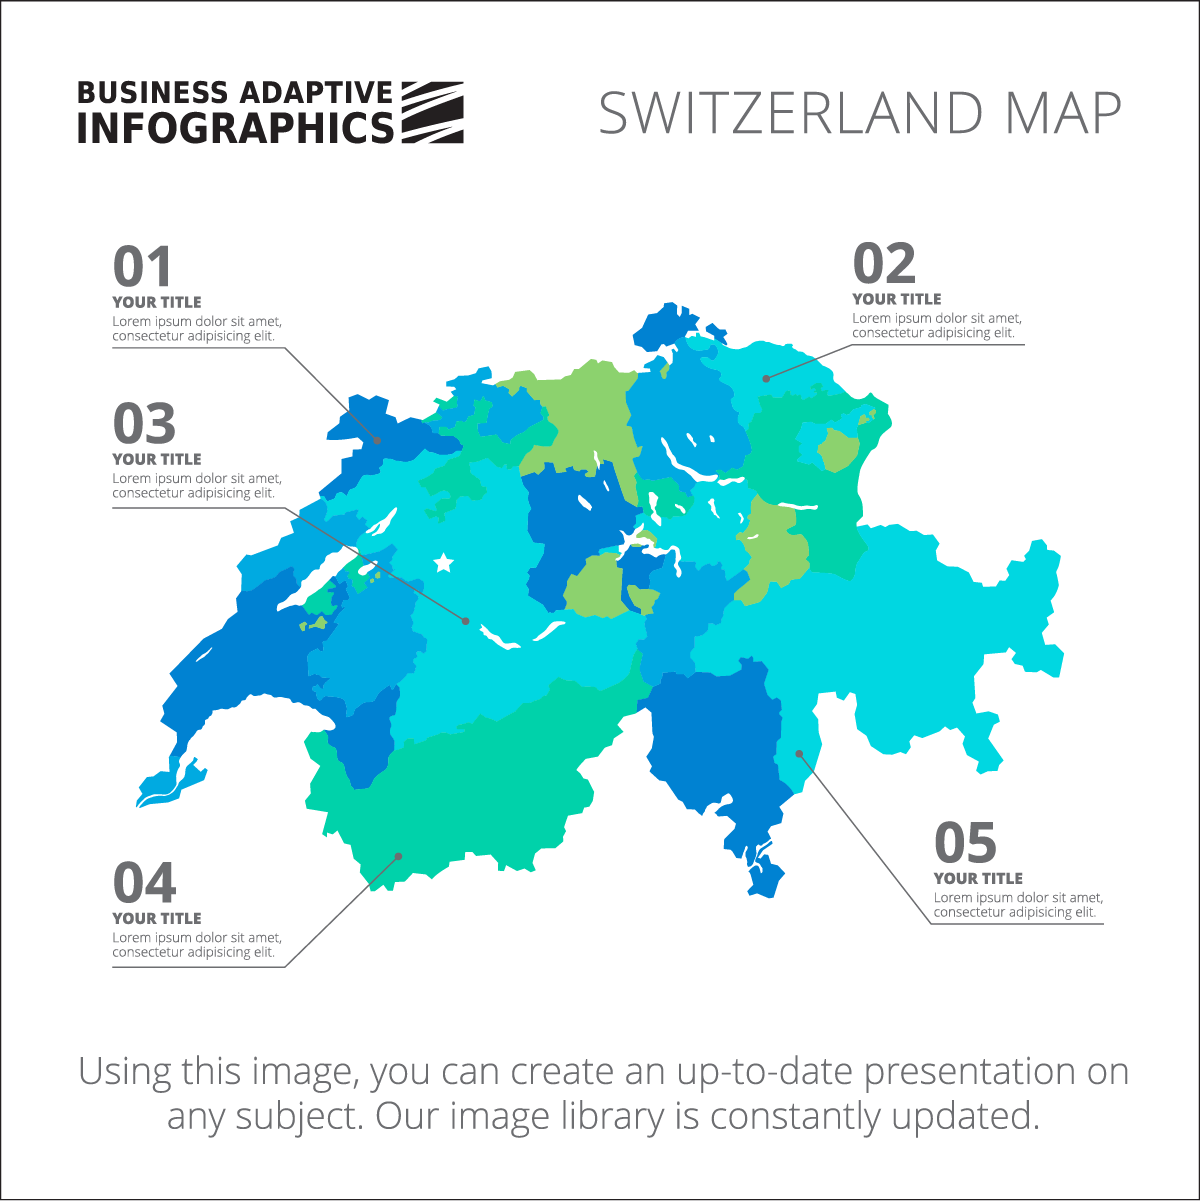 Switzerland Map PNG Image